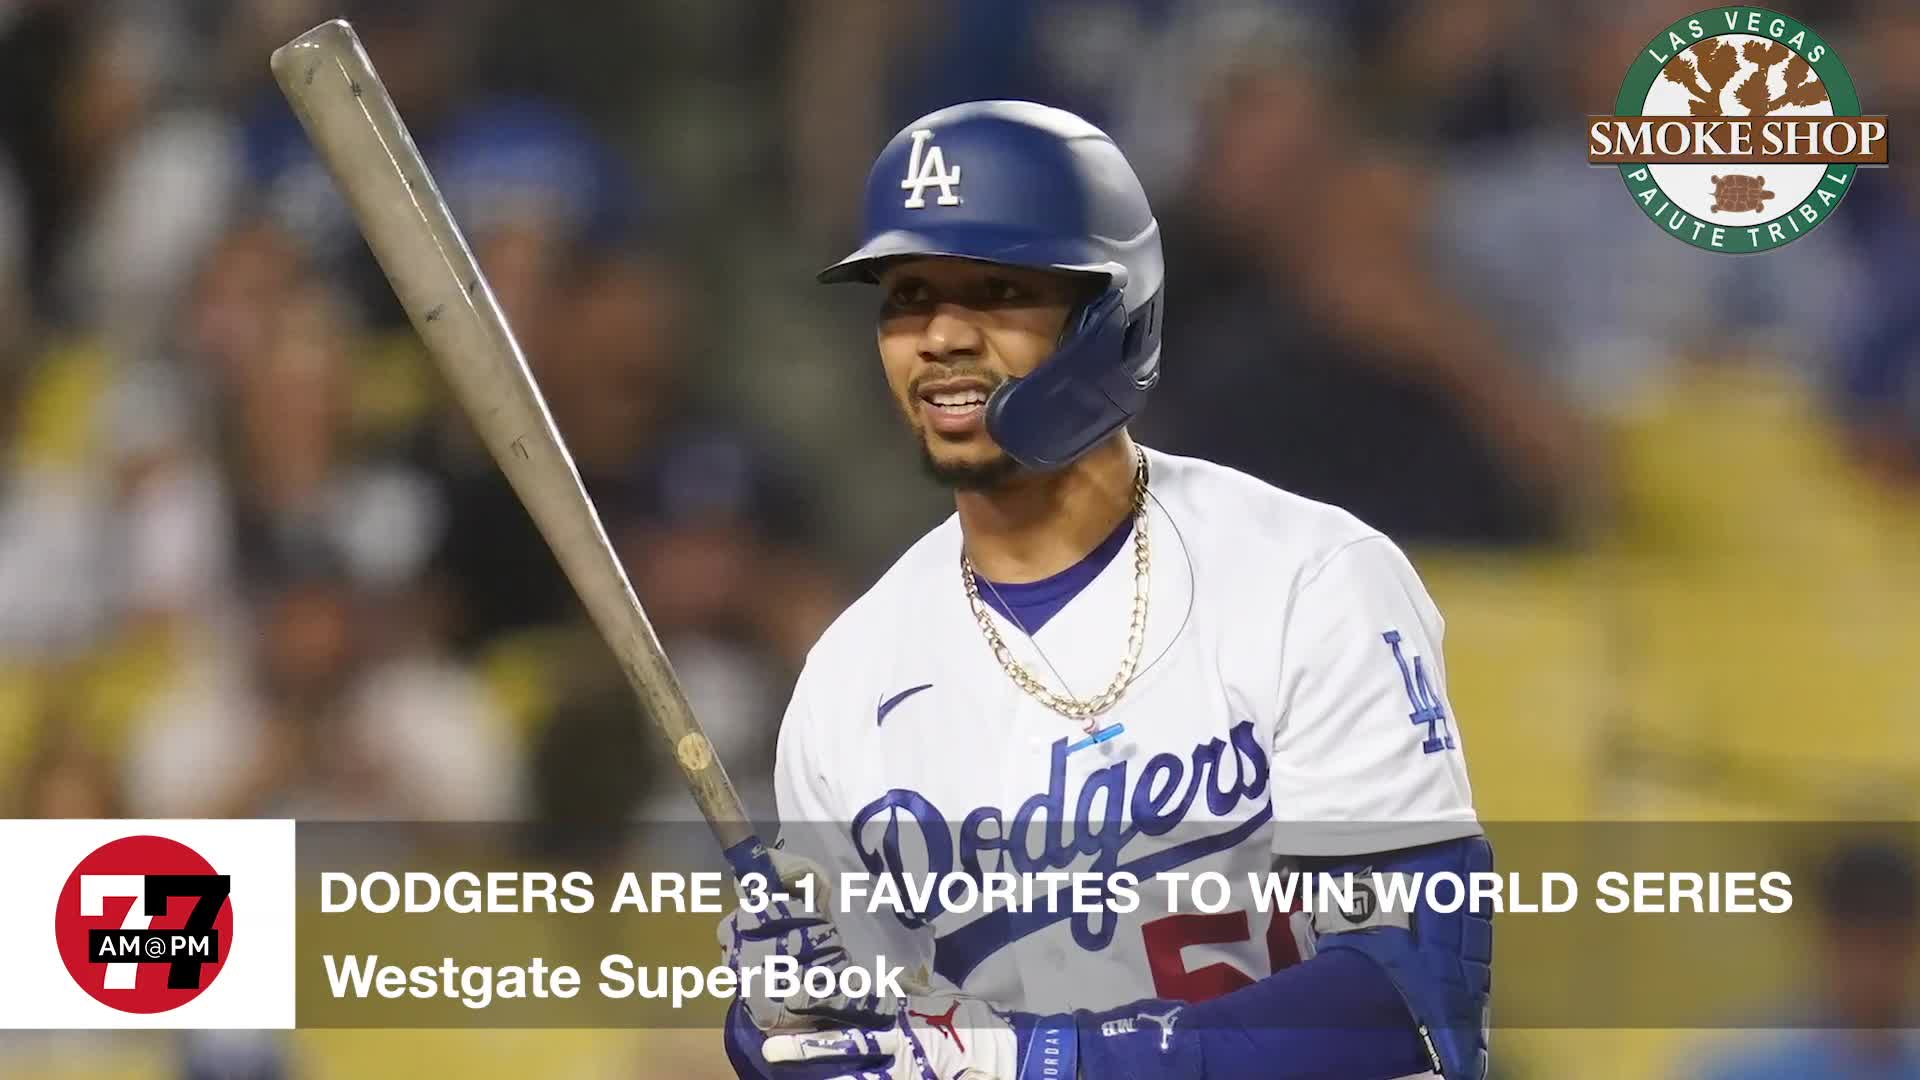 7@7PM Dodgers are 3-1 Favorites to Win the World Series